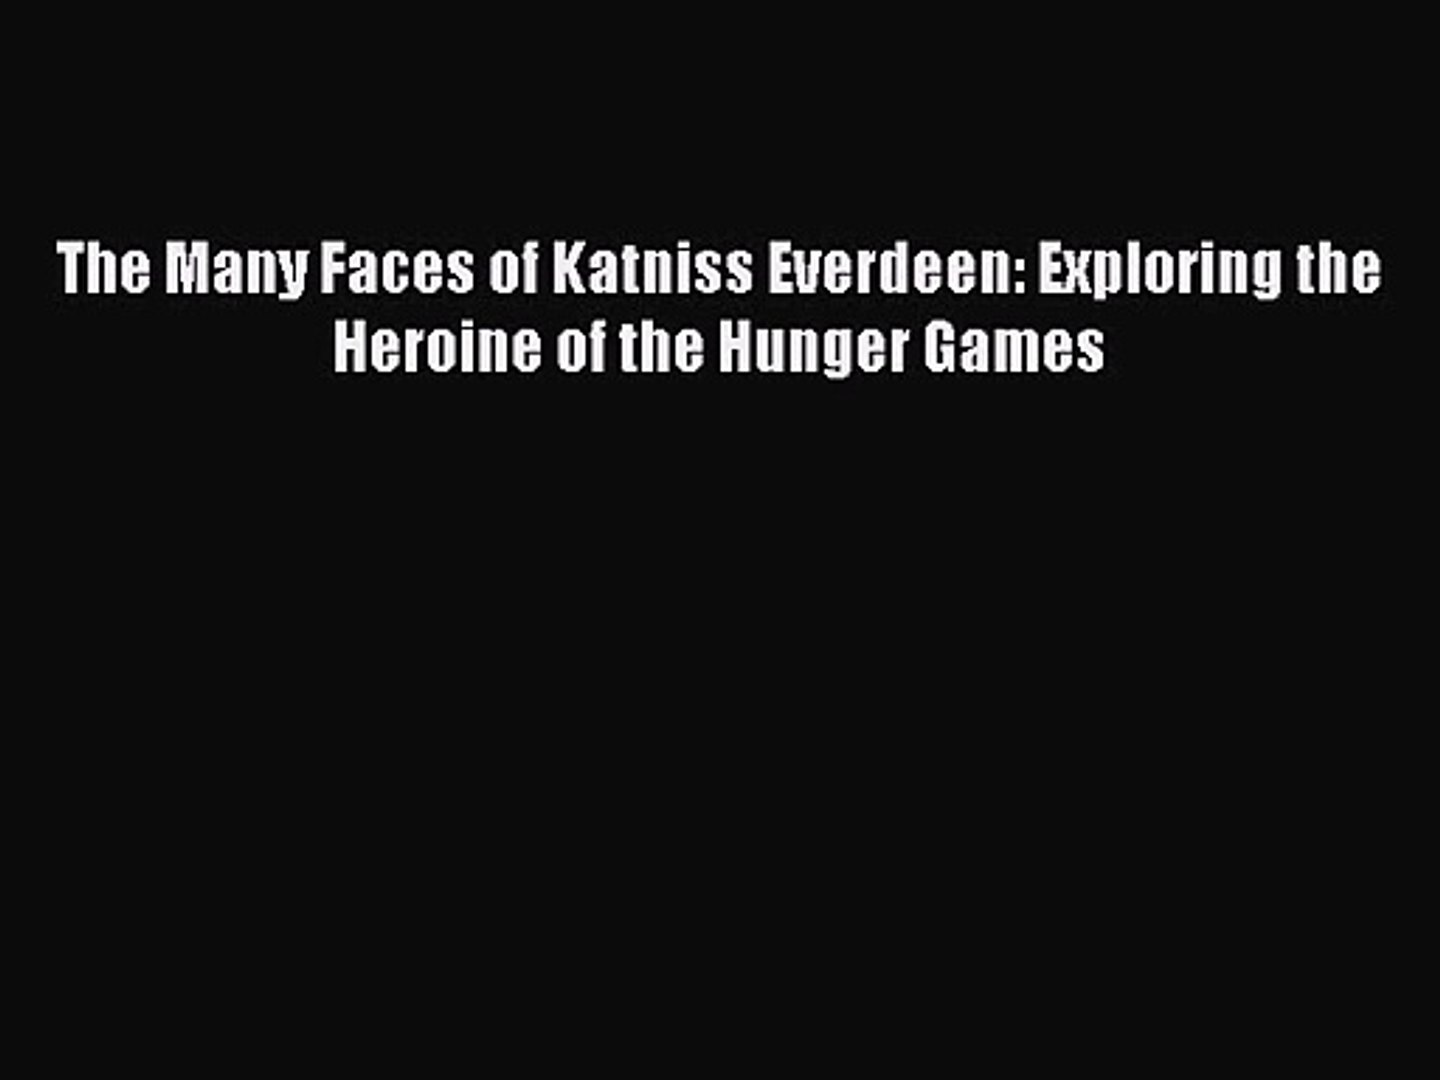 The Many Faces of Katniss Everdeen: Exploring the Heroine of the Hunger Games [PDF] Full Ebook